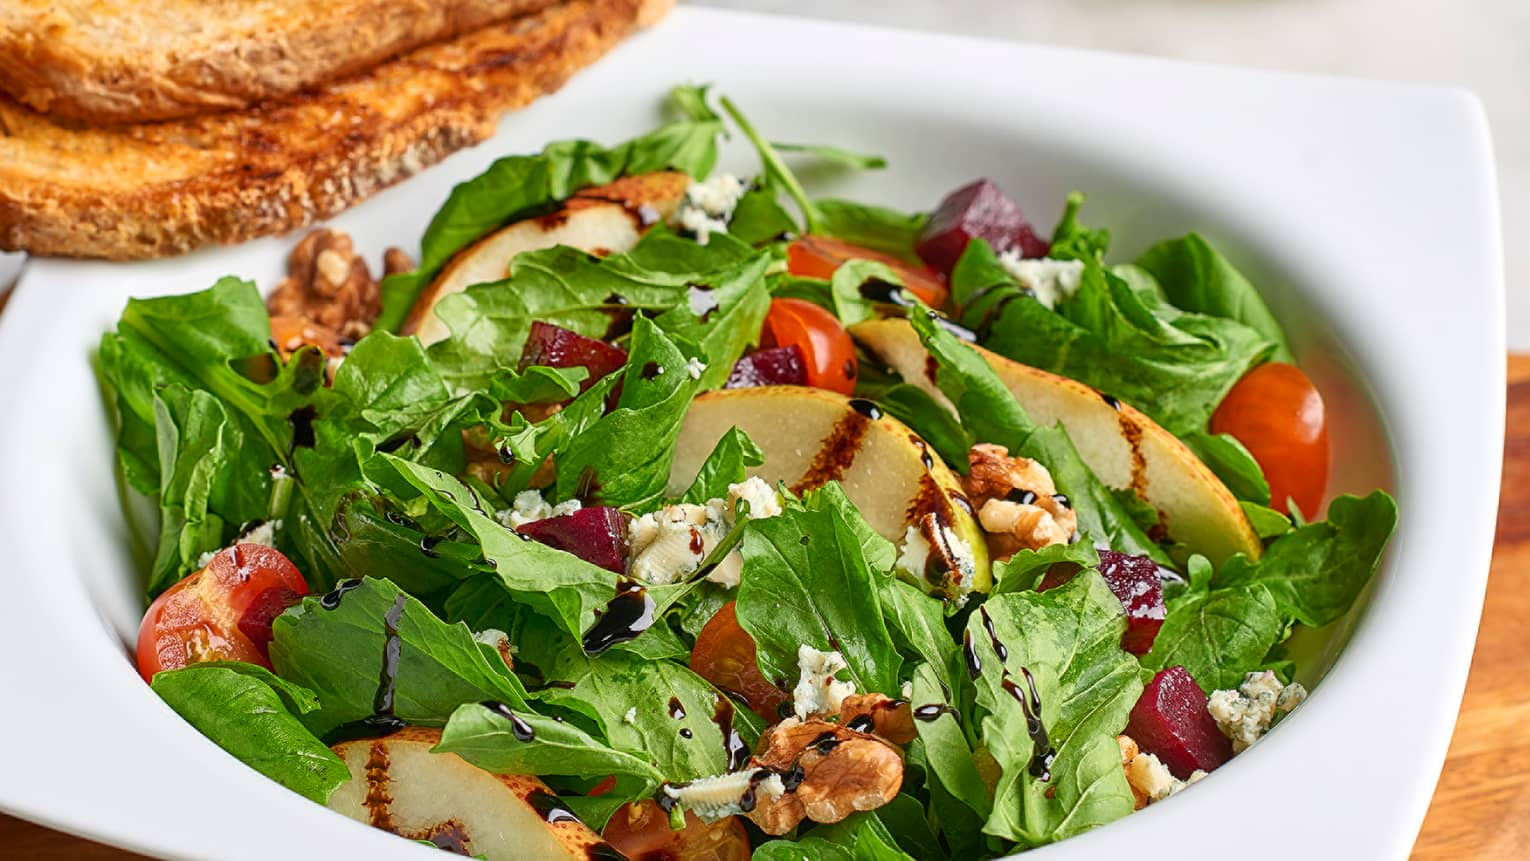 Salade Parisienne dish with green lettuce, grilled chicken slices, tomato, crumbled goat cheese